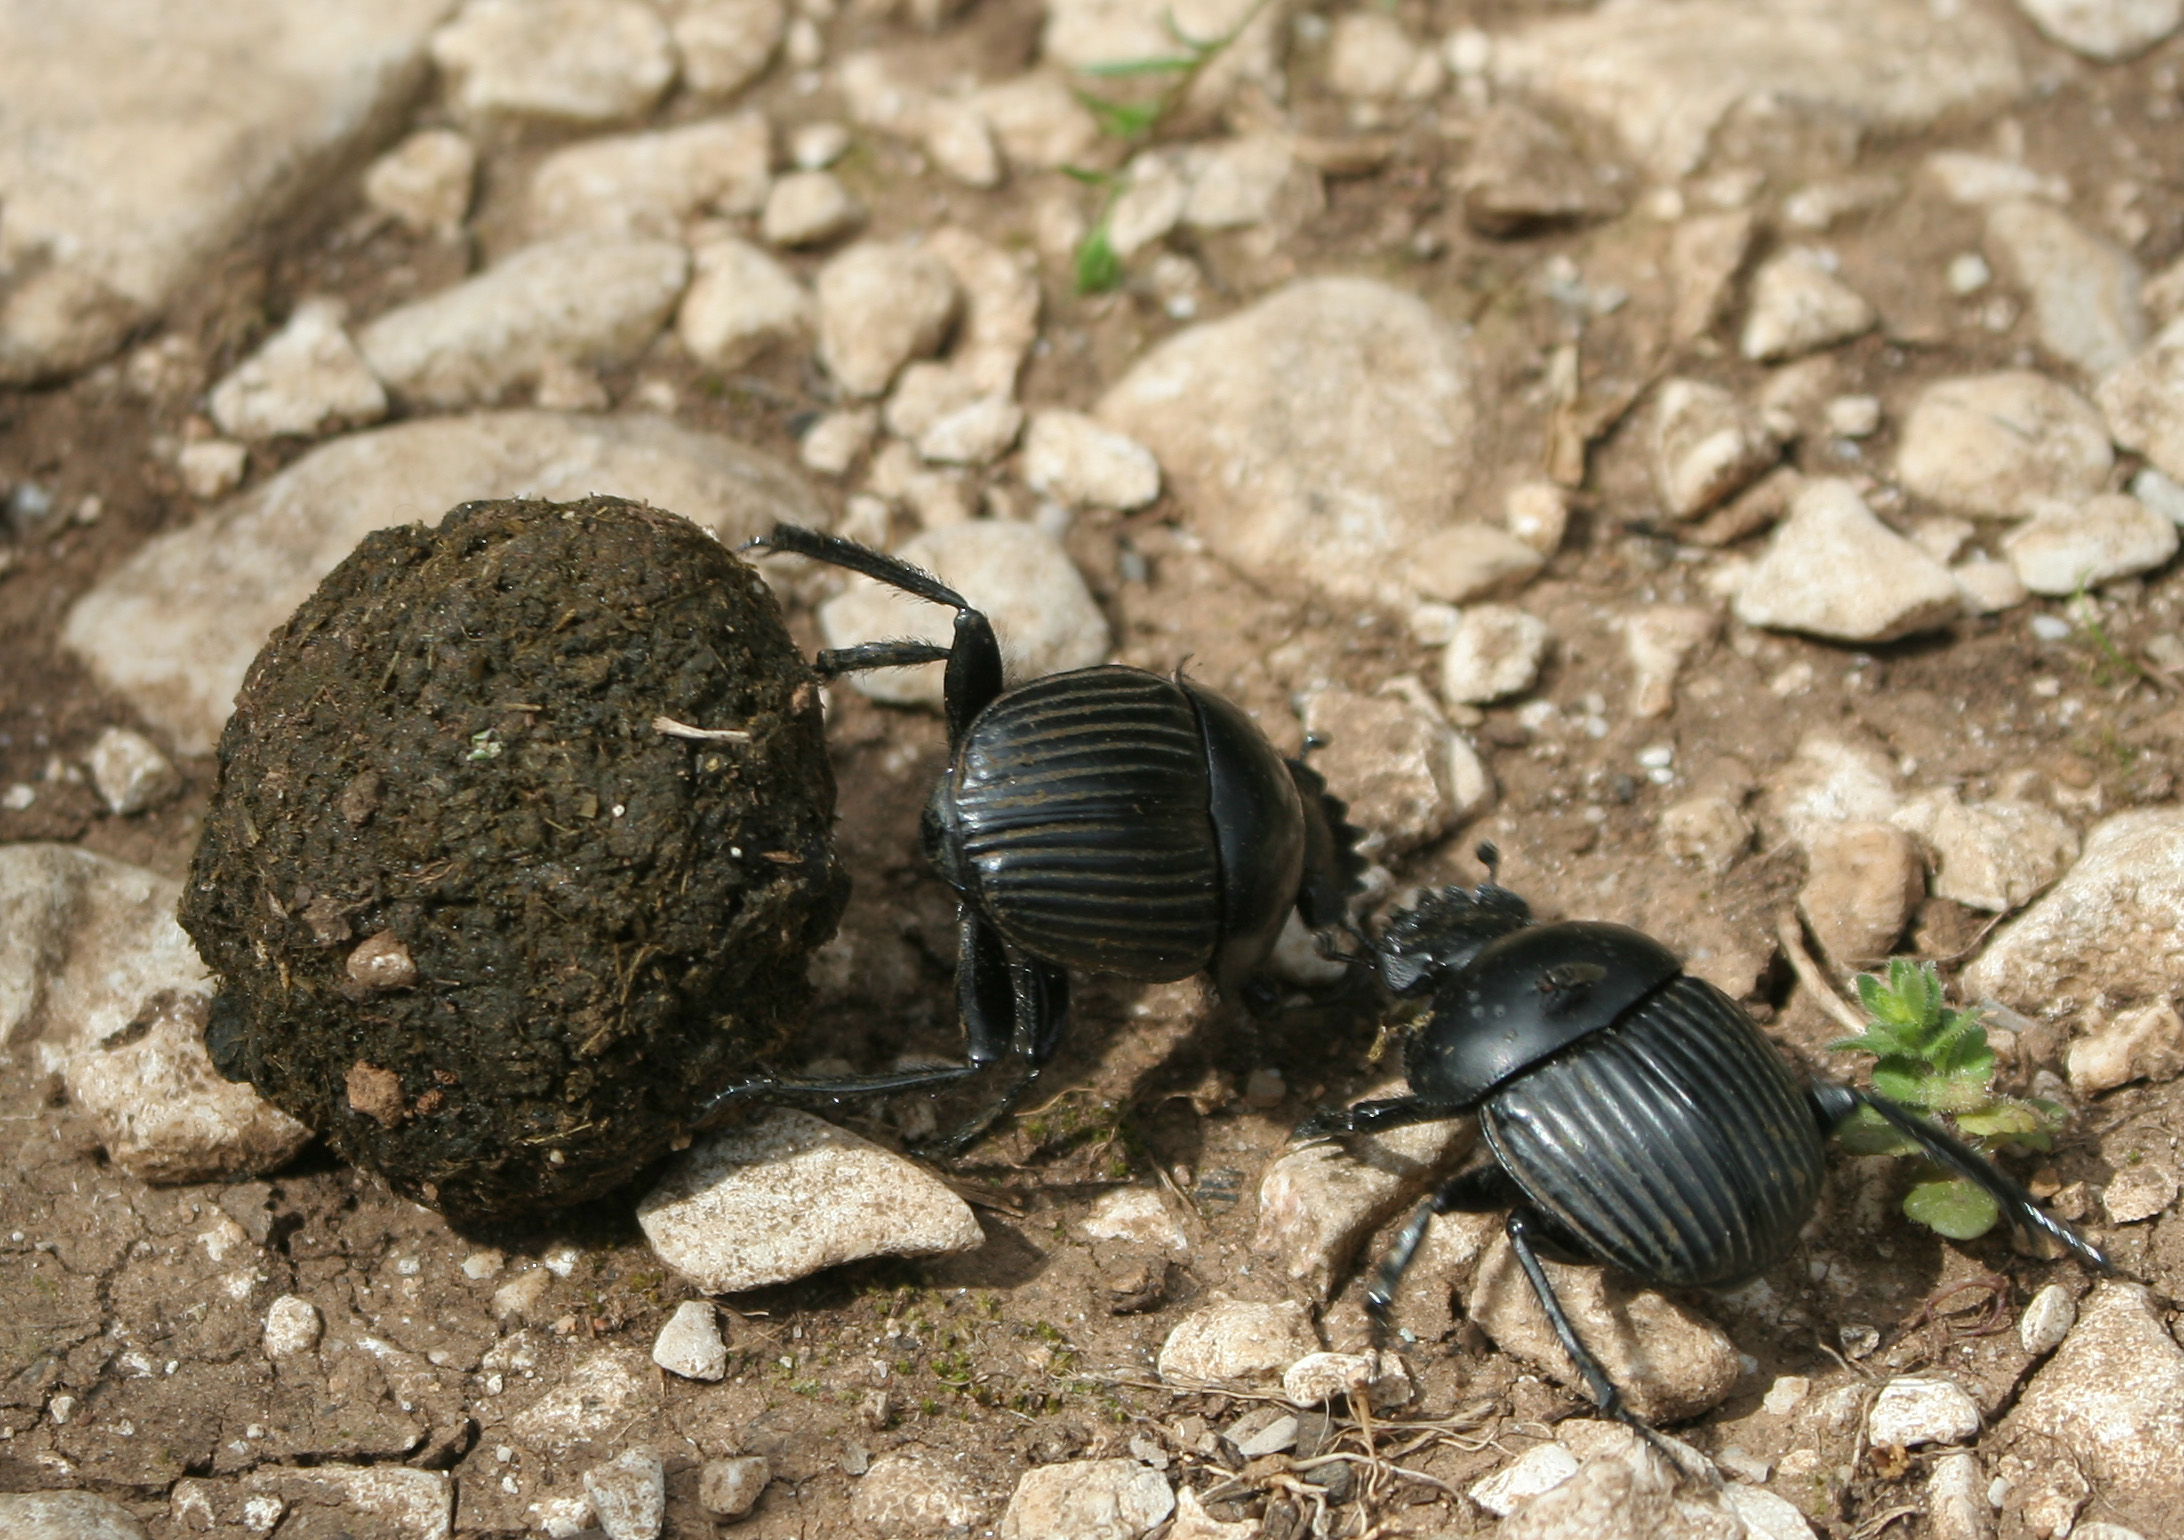 A Photographer's View of the Dung Beetle